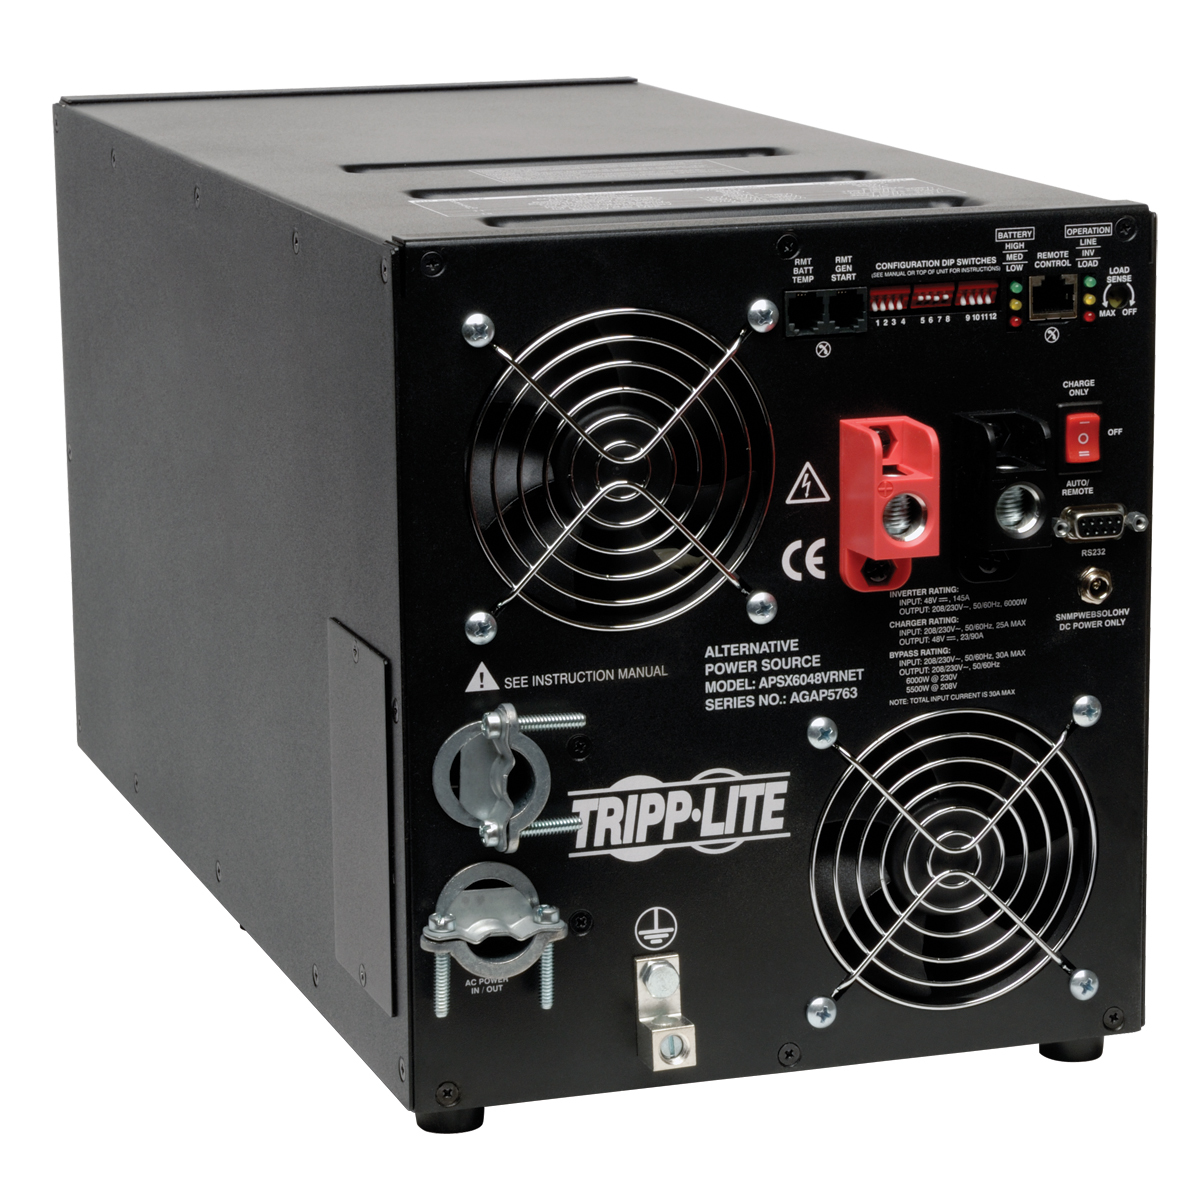 Power Inverter 6000W APS X Series 48VDC 208/230V with Pure Sine-Wave Output AVR Hardwired